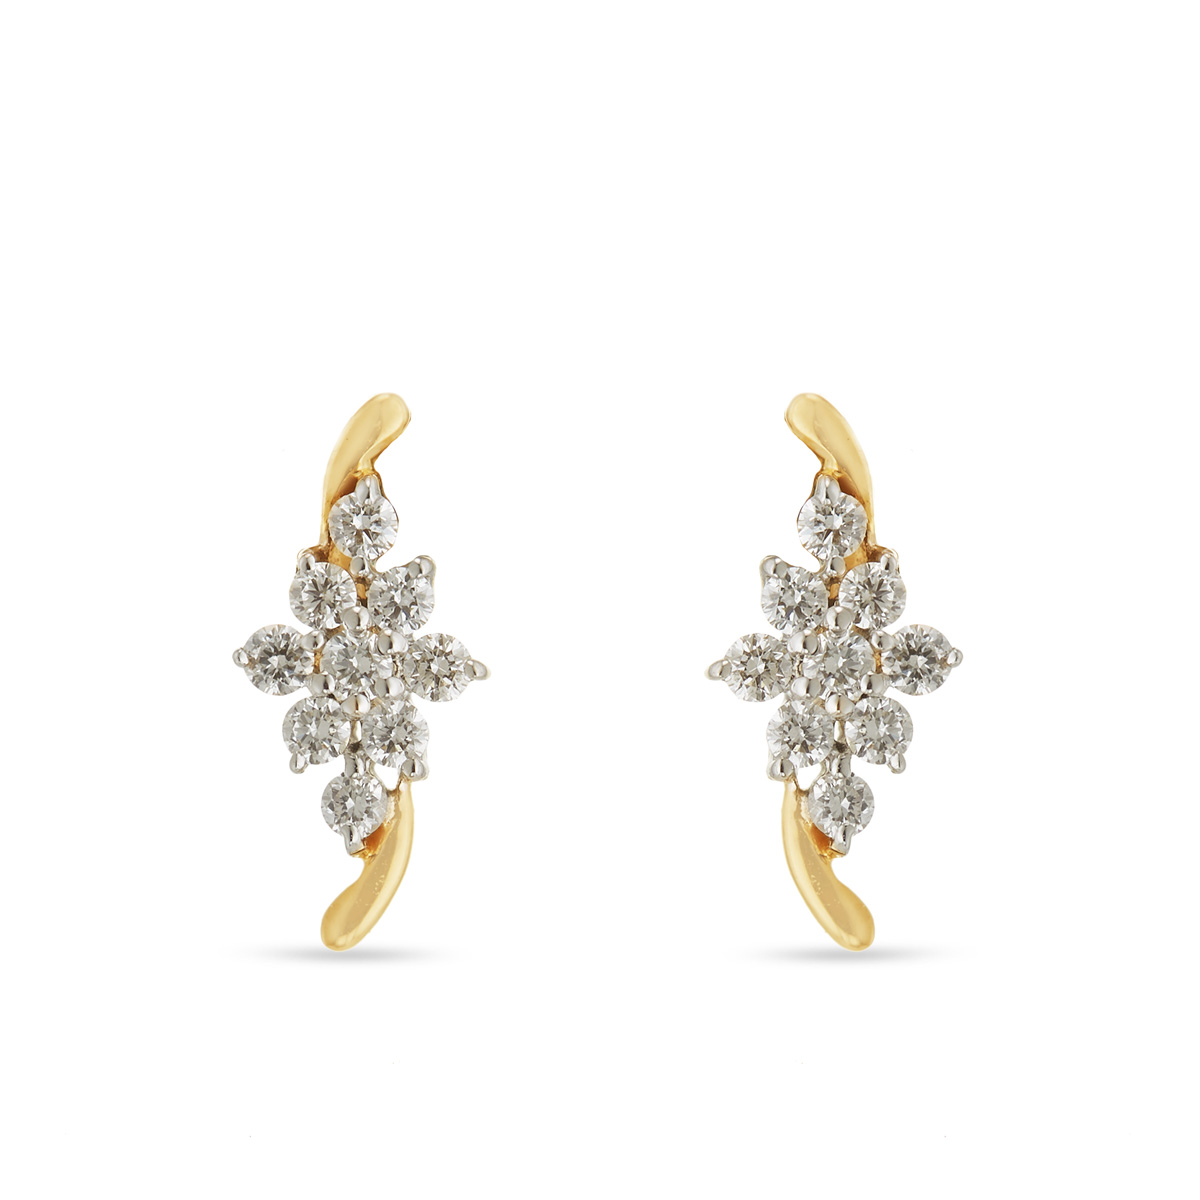 Classy Diamond Earrings